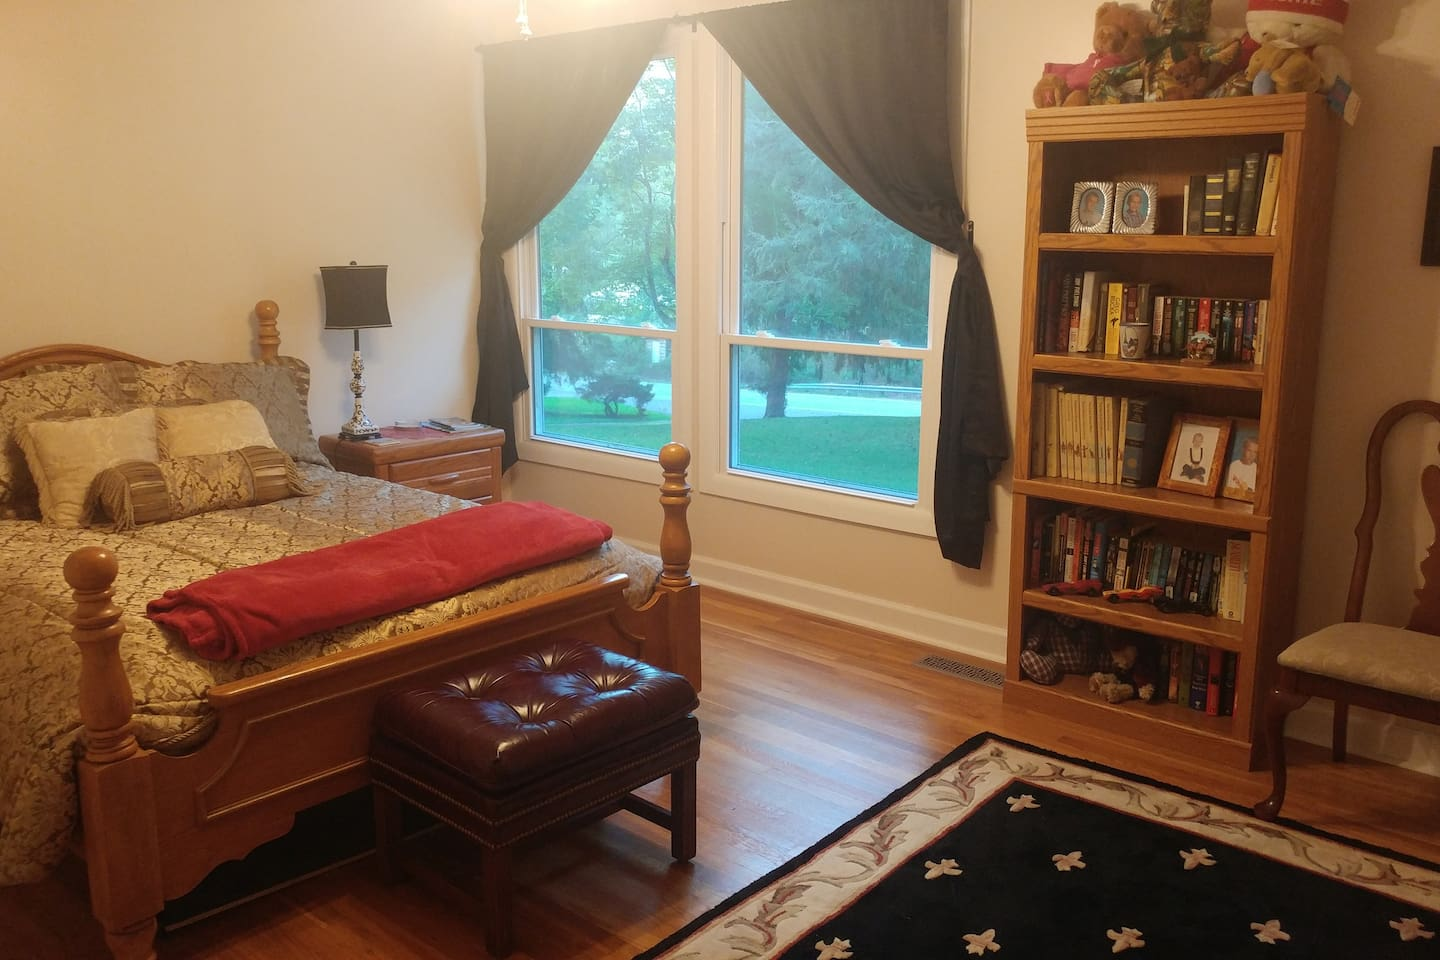 Spacious, airy room has queen bed and connects to a large bath. Curtains are light/heat/cold-blocking.